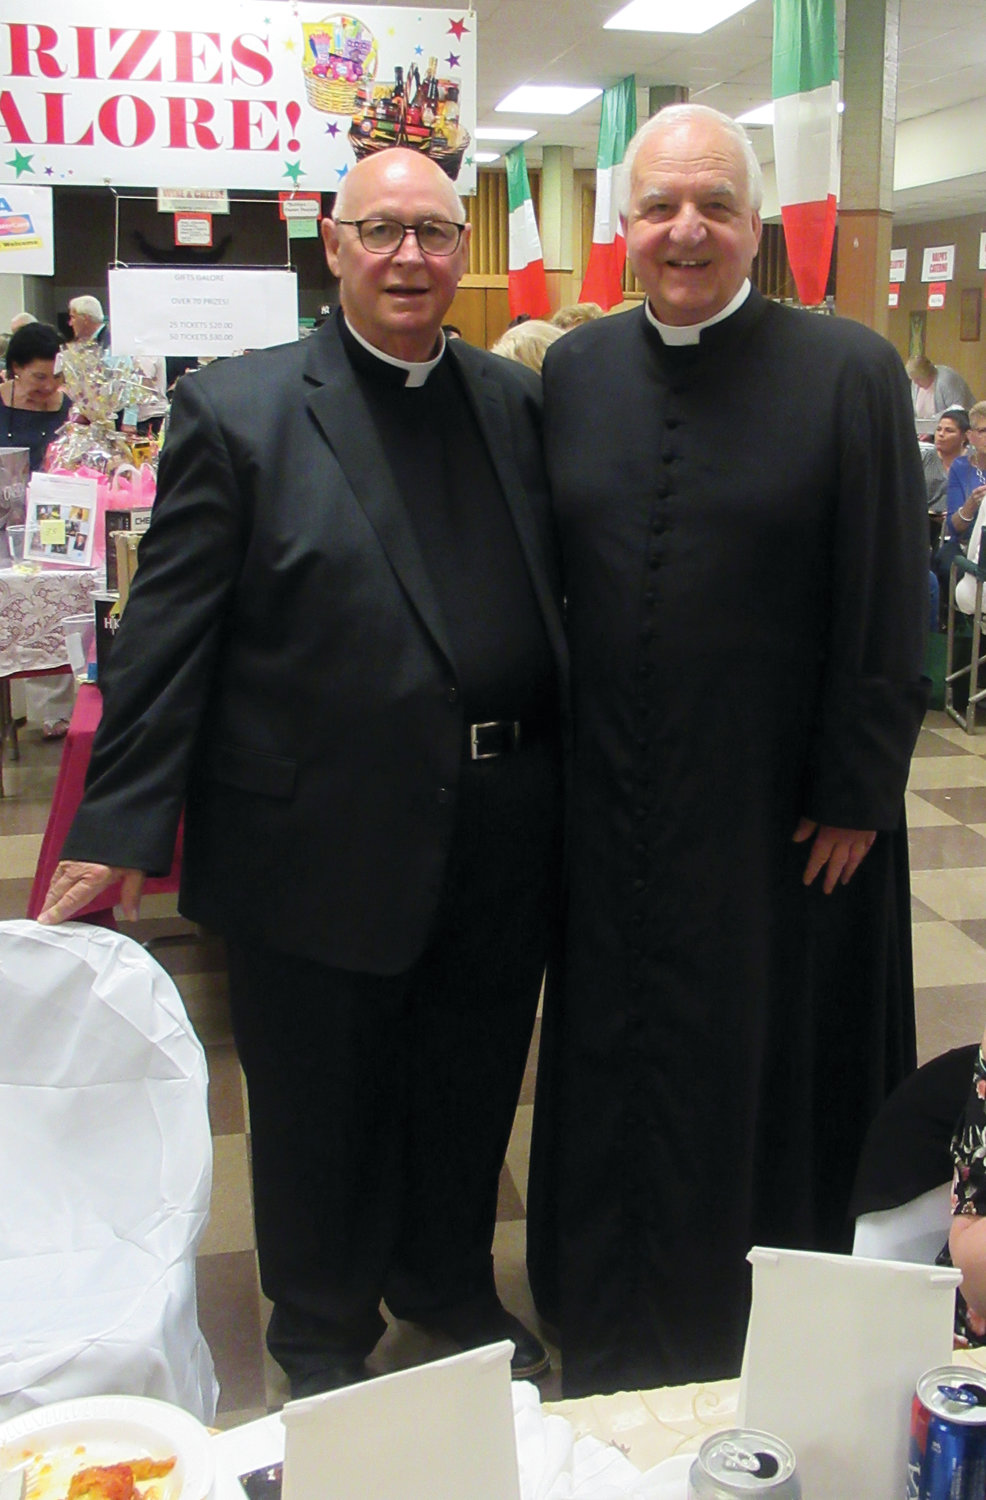 POPULAR PRIESTS: The Rev. Peter J. Gower, the pastor at Our Lady of Grace Church, welcomes Monsignor Carlo F. Montecalvo as grand marshal of the parish's 10th Annual Primavera.